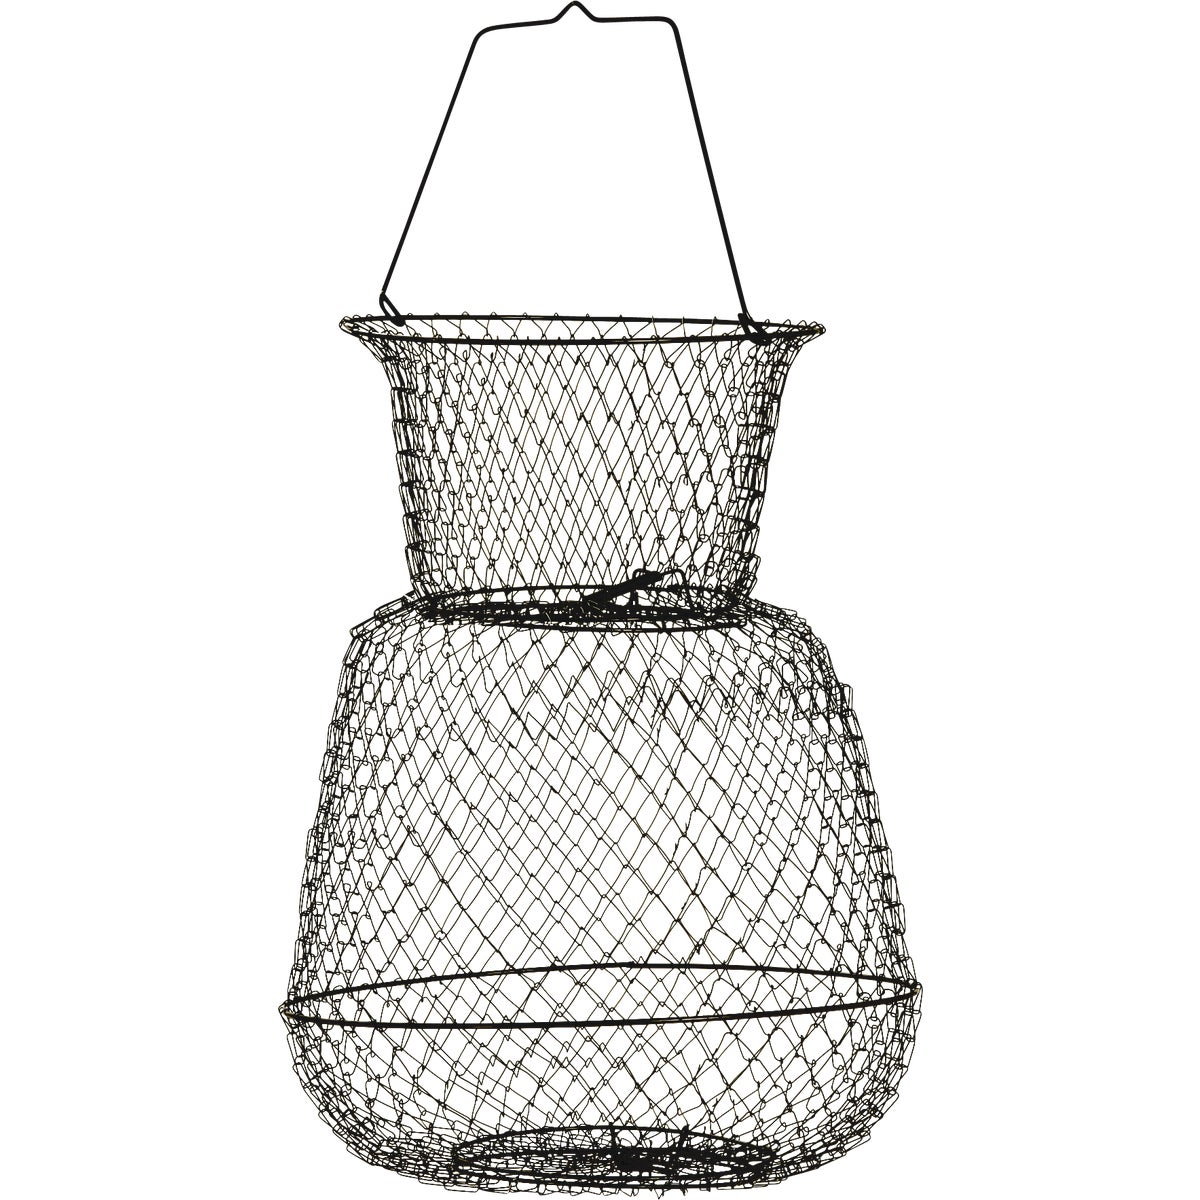 WIRE FISH BASKET